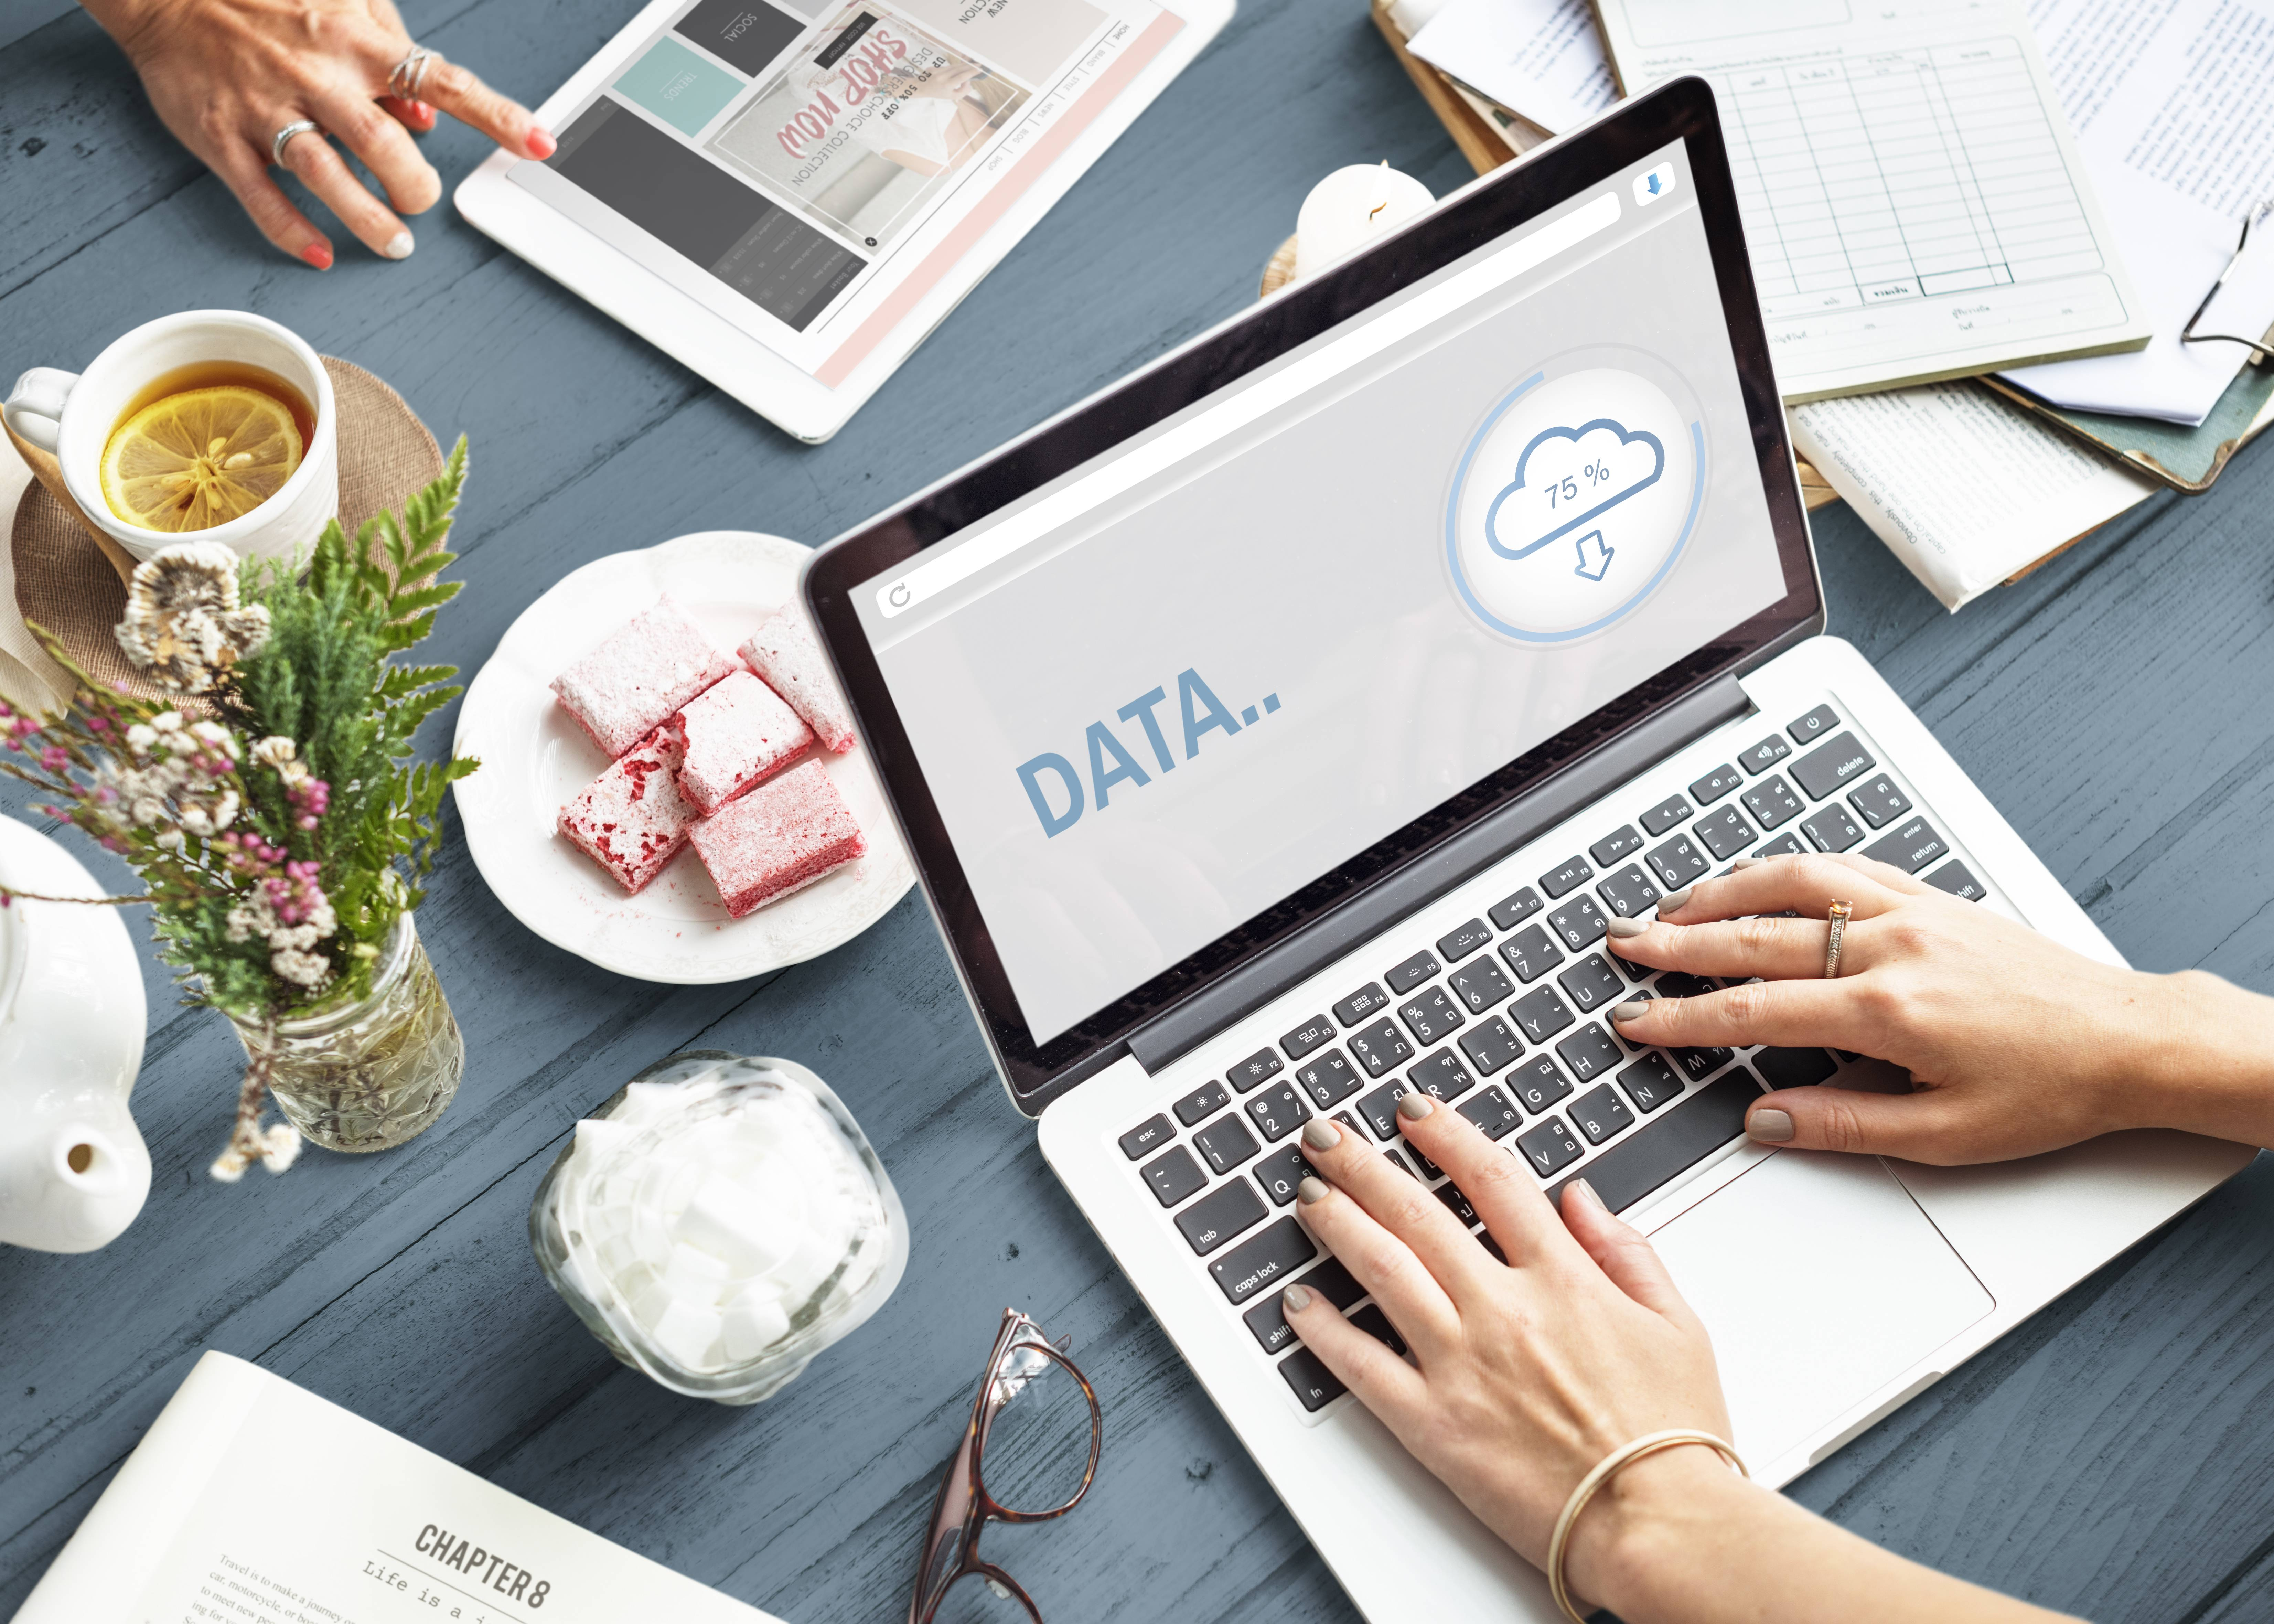 Big Data Analytics Benefits and Features